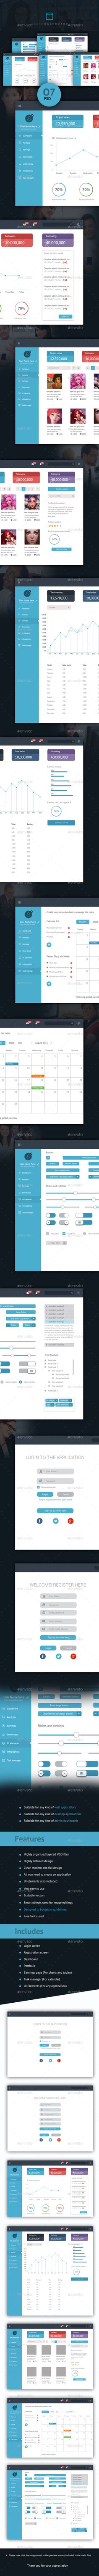 Dashboard User Interface For any Application Template PSD #design #ui Download: http://graphicriver.net/item/dashboard-ui-for-any-application/12506339?ref=ksioks